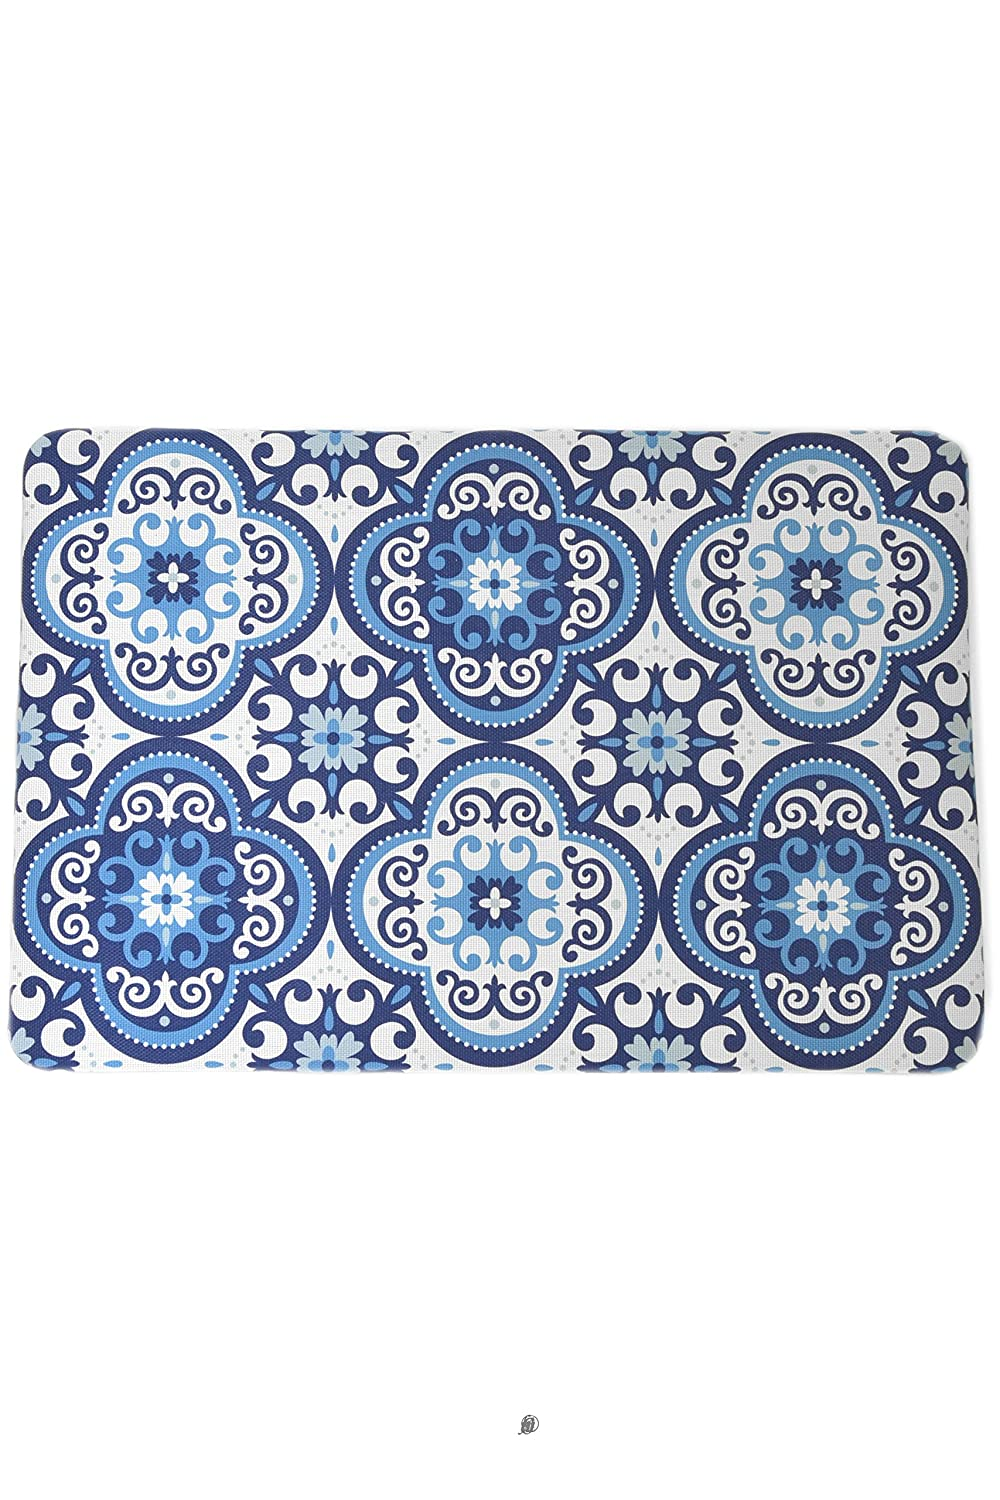 American Chateau Blue & White Talavera Tile Design Rug Floor Bath Kitchen Mat with Non-Slip Backing